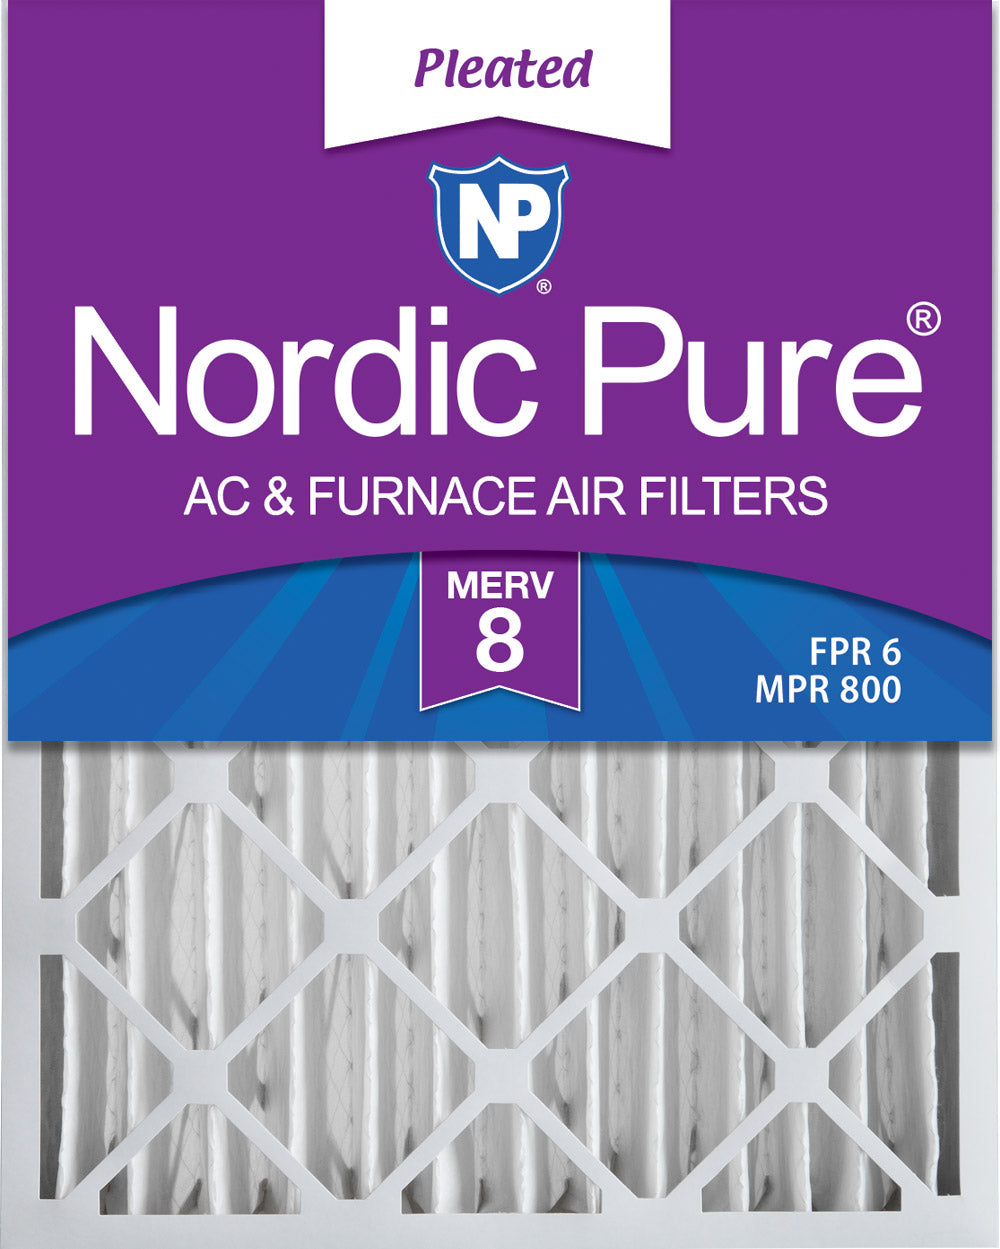 16x20x4 (3 5/8) Pleated MERV 8 Air Filters 6 Pack